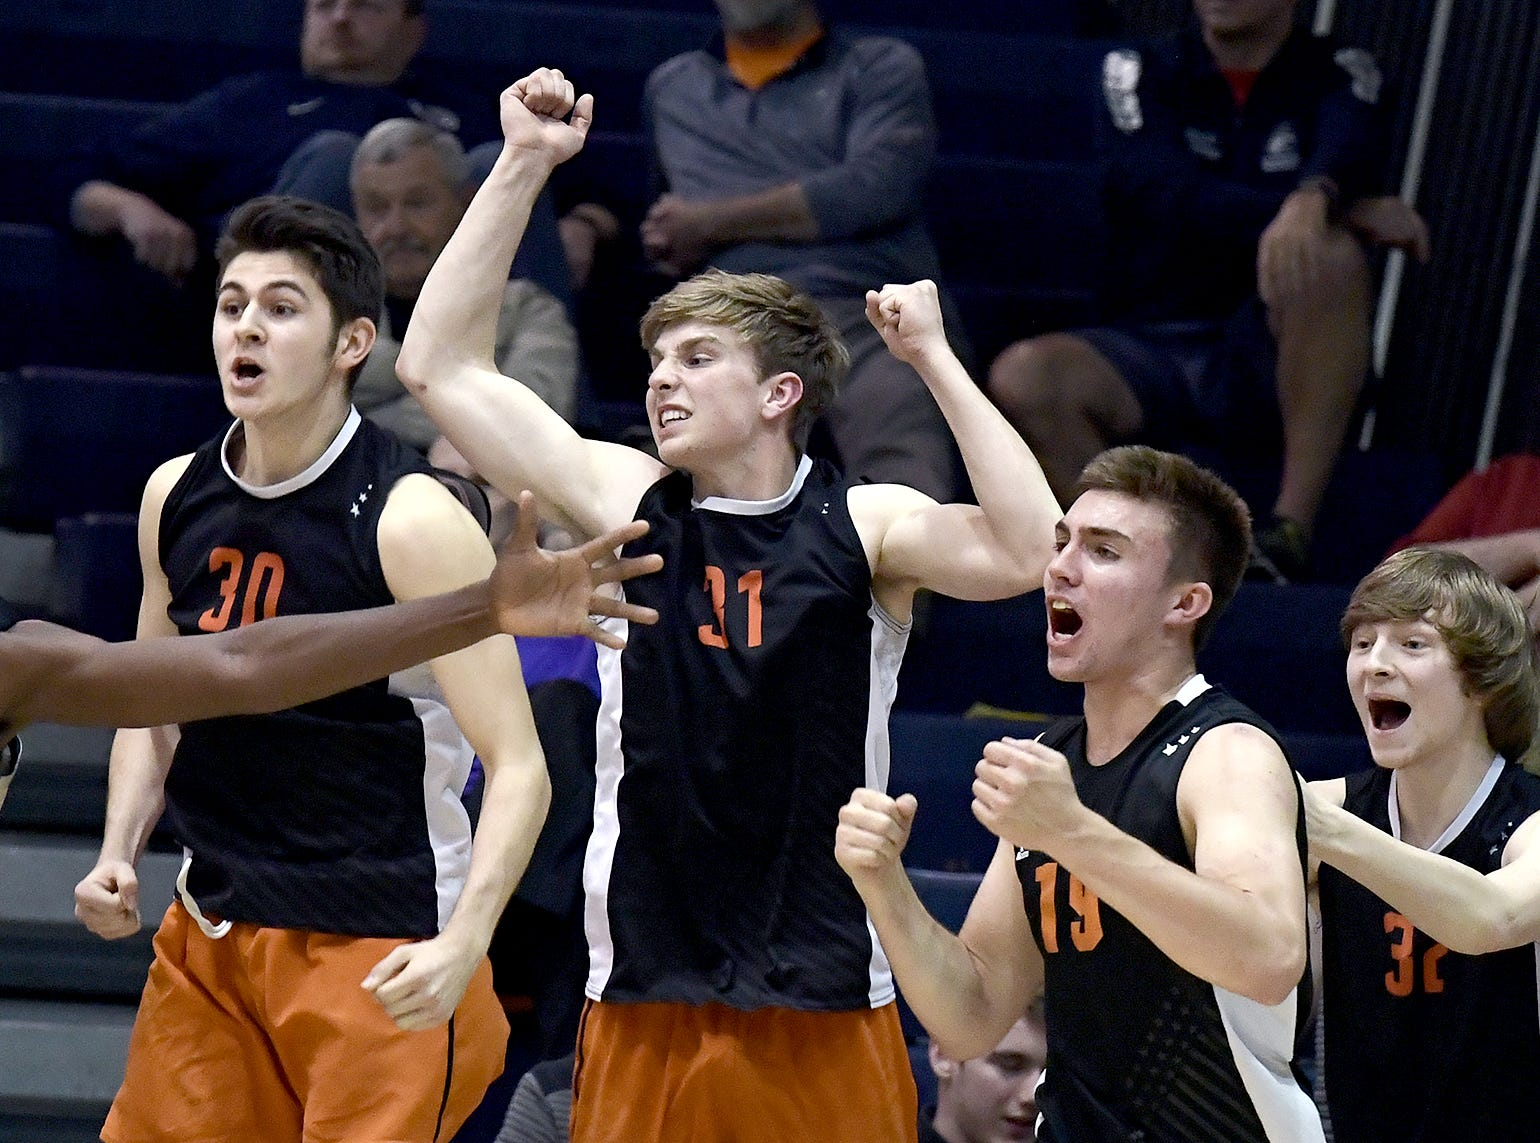 Central York's bench celebrates a game 3 win over Northeastern in the York-Adams boys' volleyball championship match at Dallastown Tuesday, May 14, 2019. Bill Kalina photo